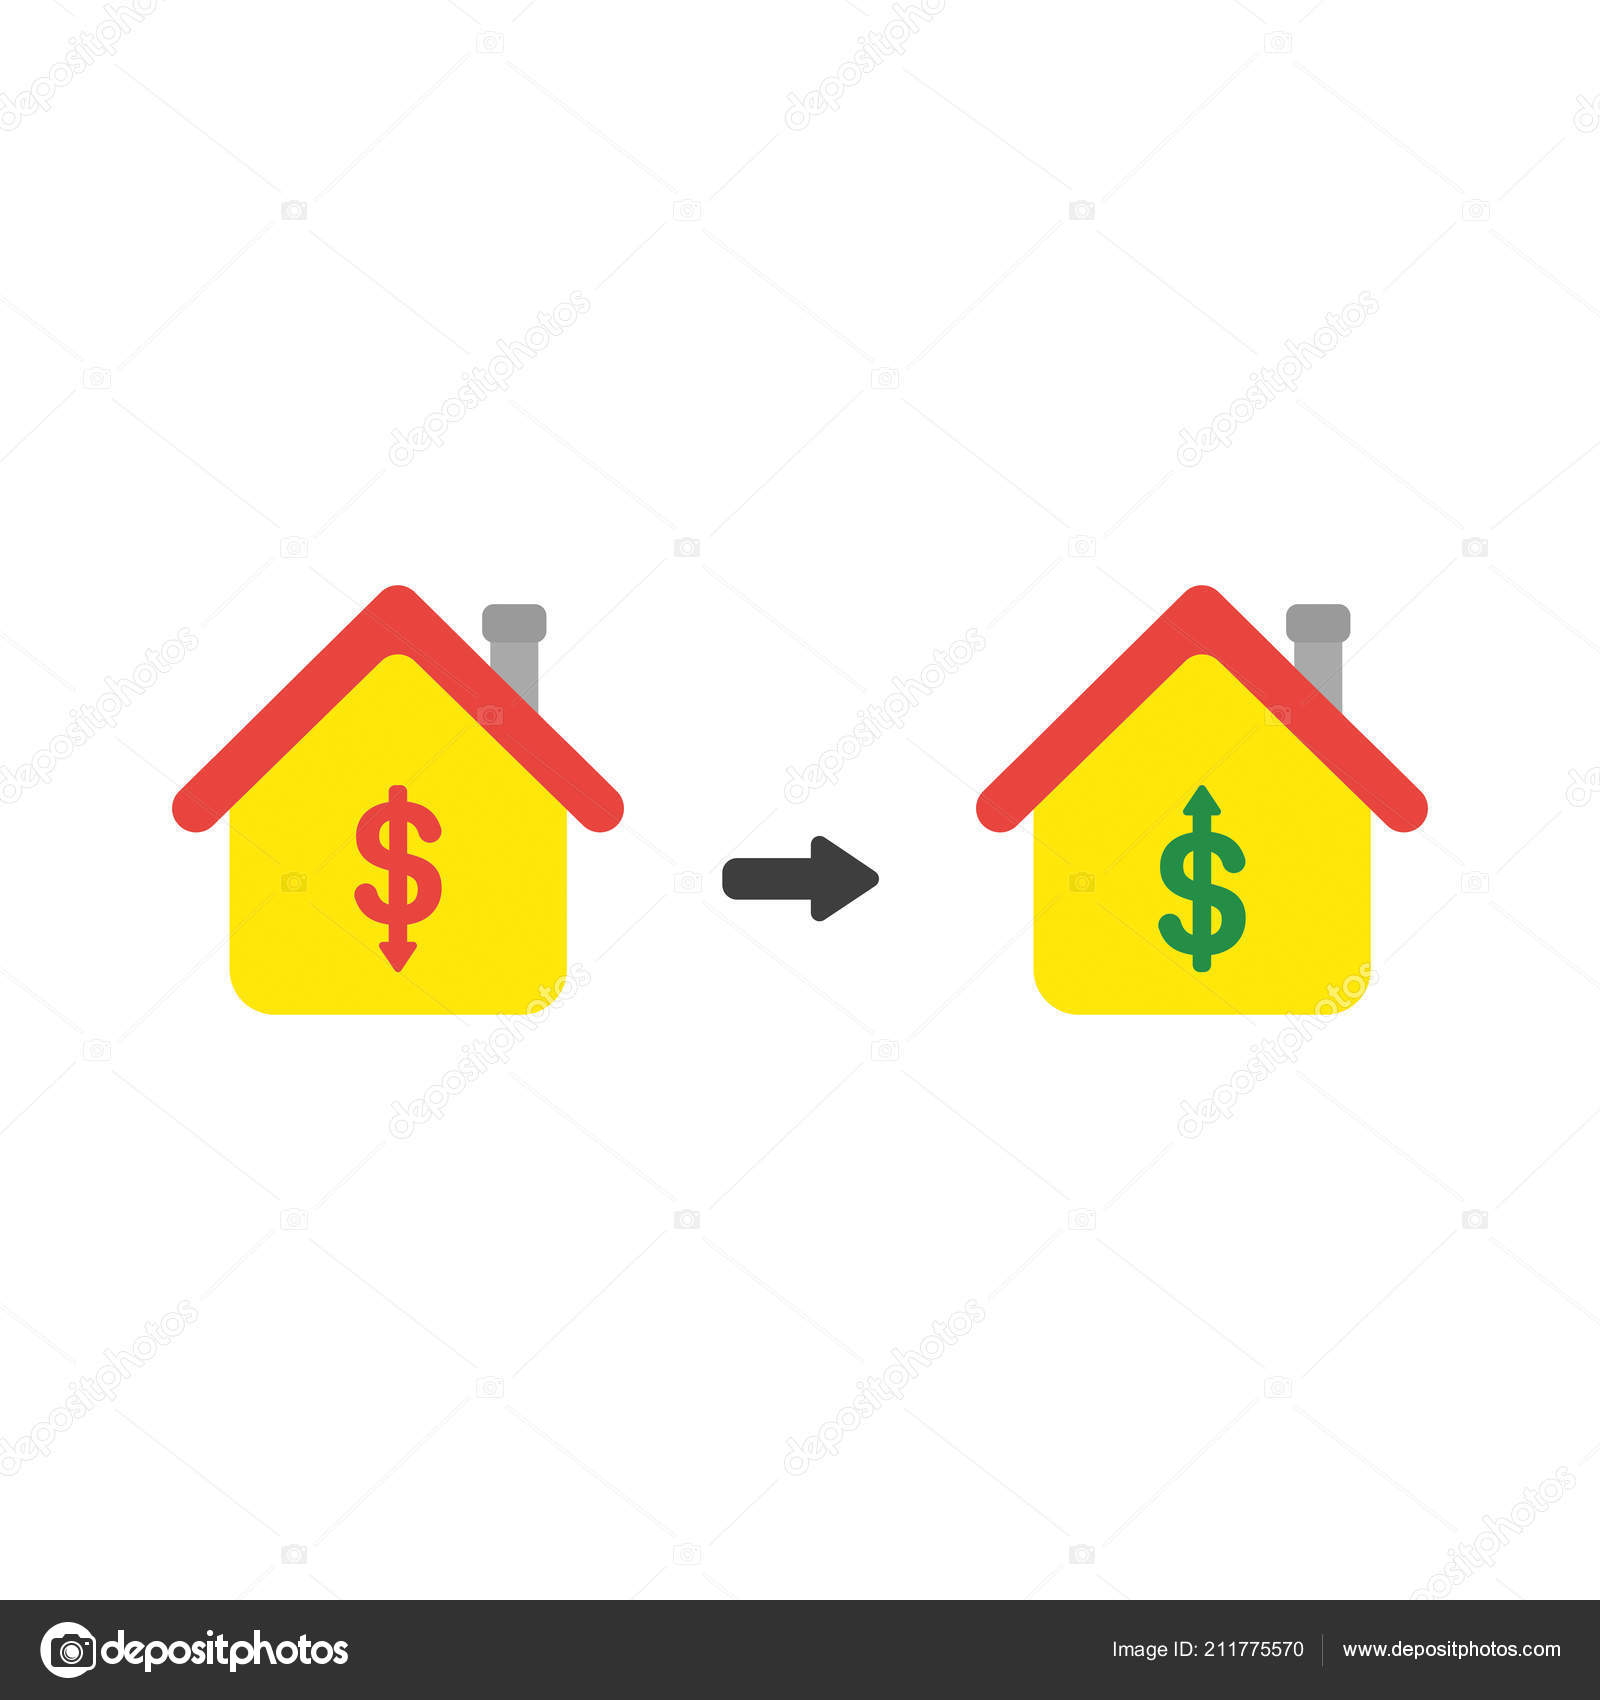 Vector Illustration Icon Concept House Dollar Money Symbols Arrows